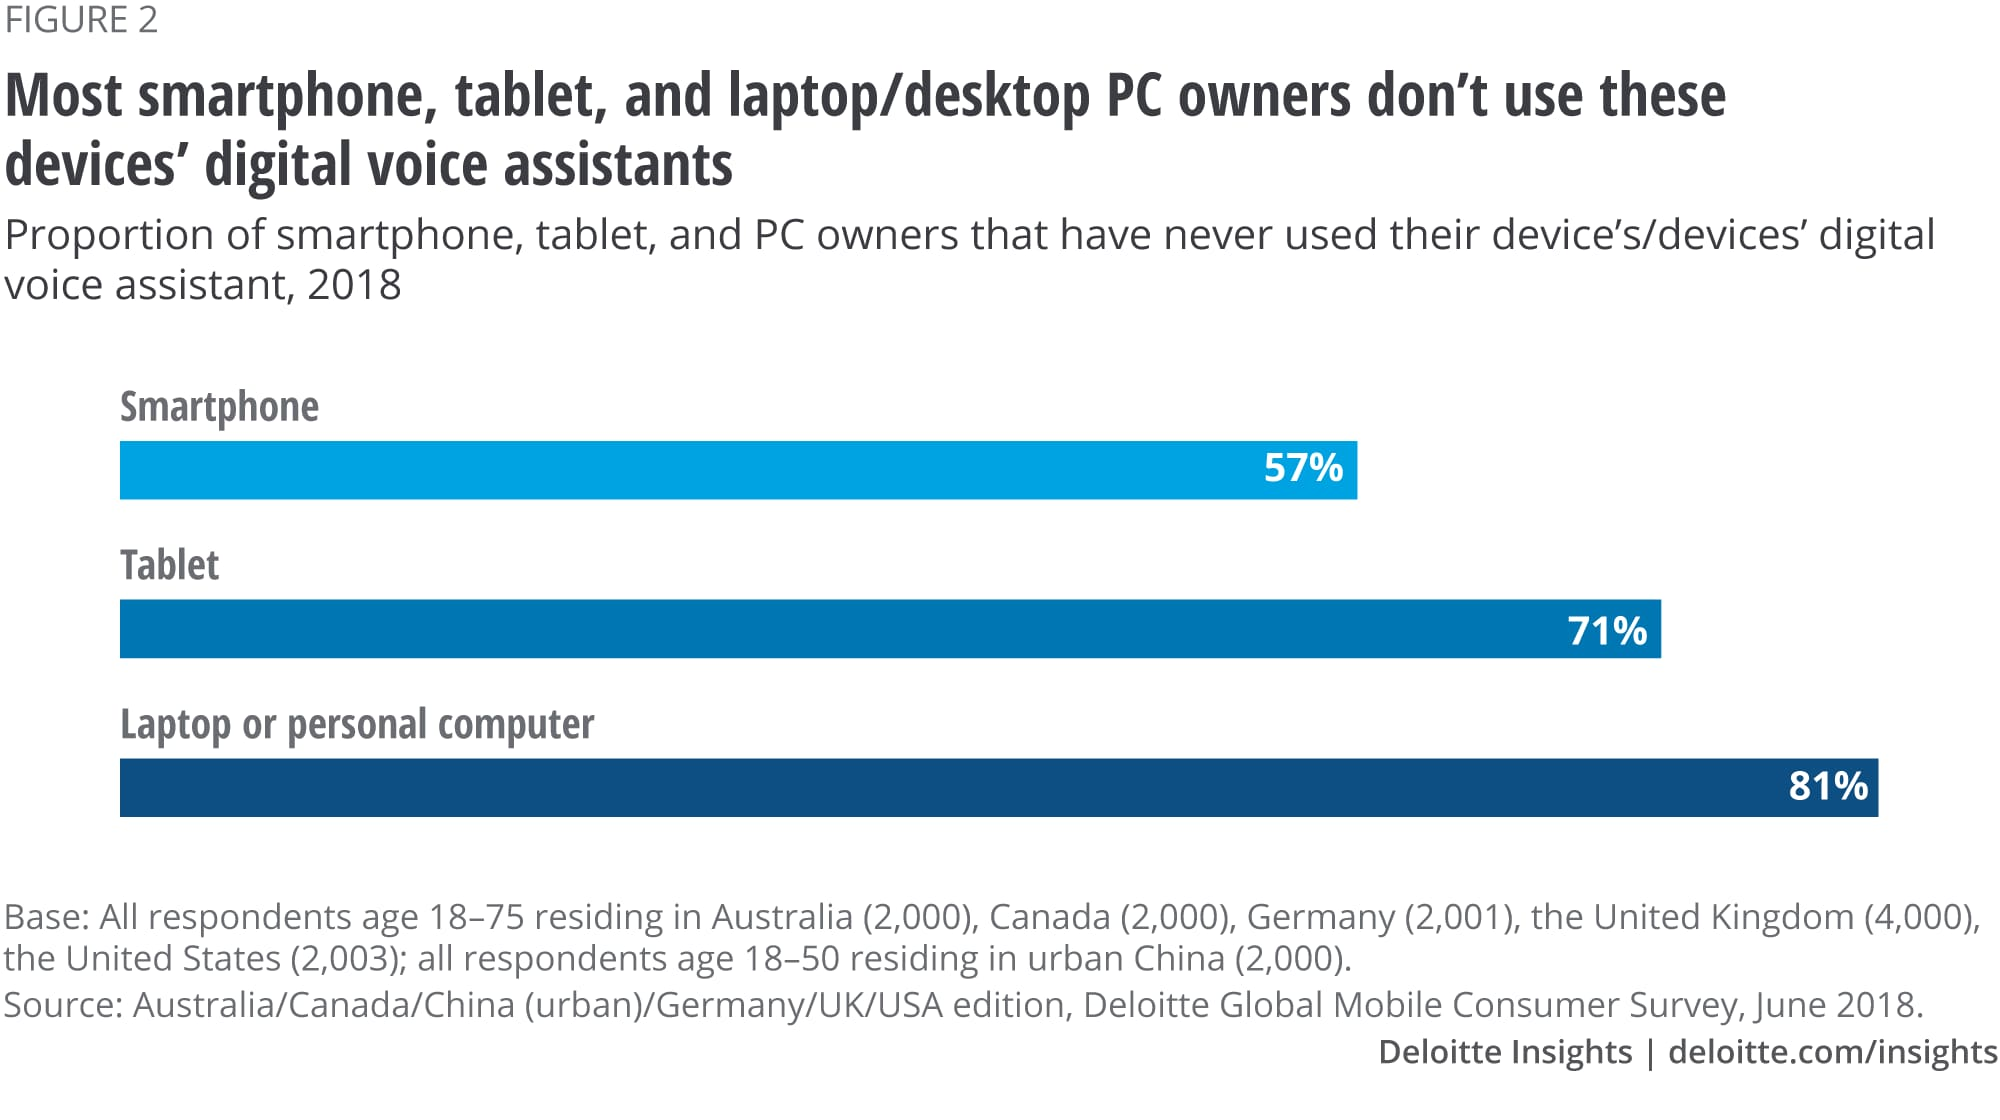 Most smartphone, tablet, and laptop/desktop PC owners don't use these devices' digital voice assistants